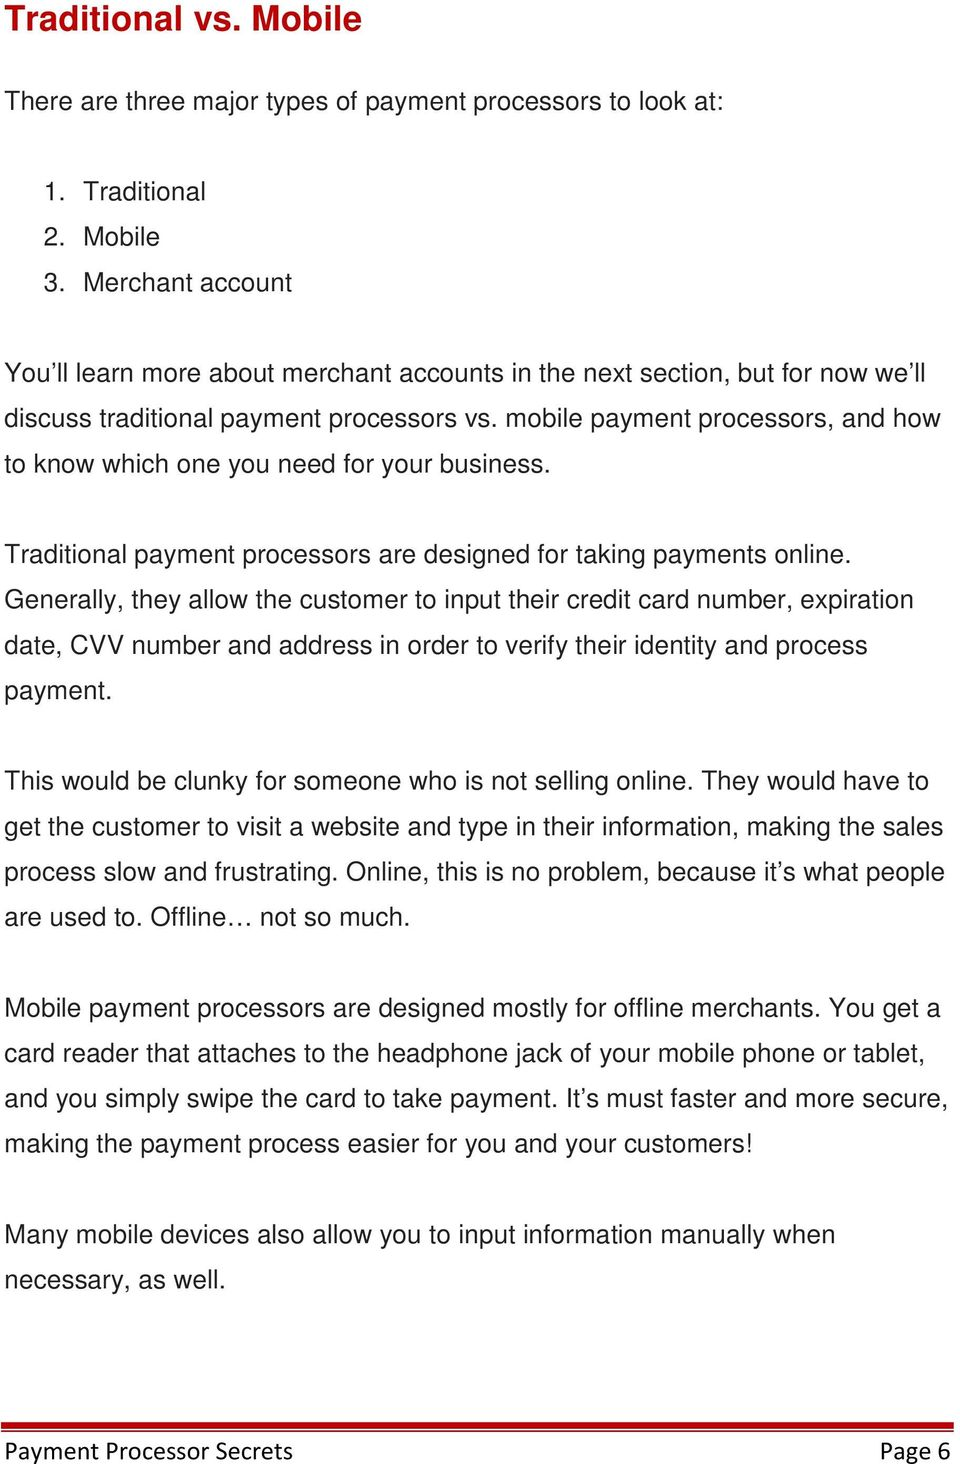 mobile payment processors, and how to know which one you need for your business. Traditional payment processors are designed for taking payments online.